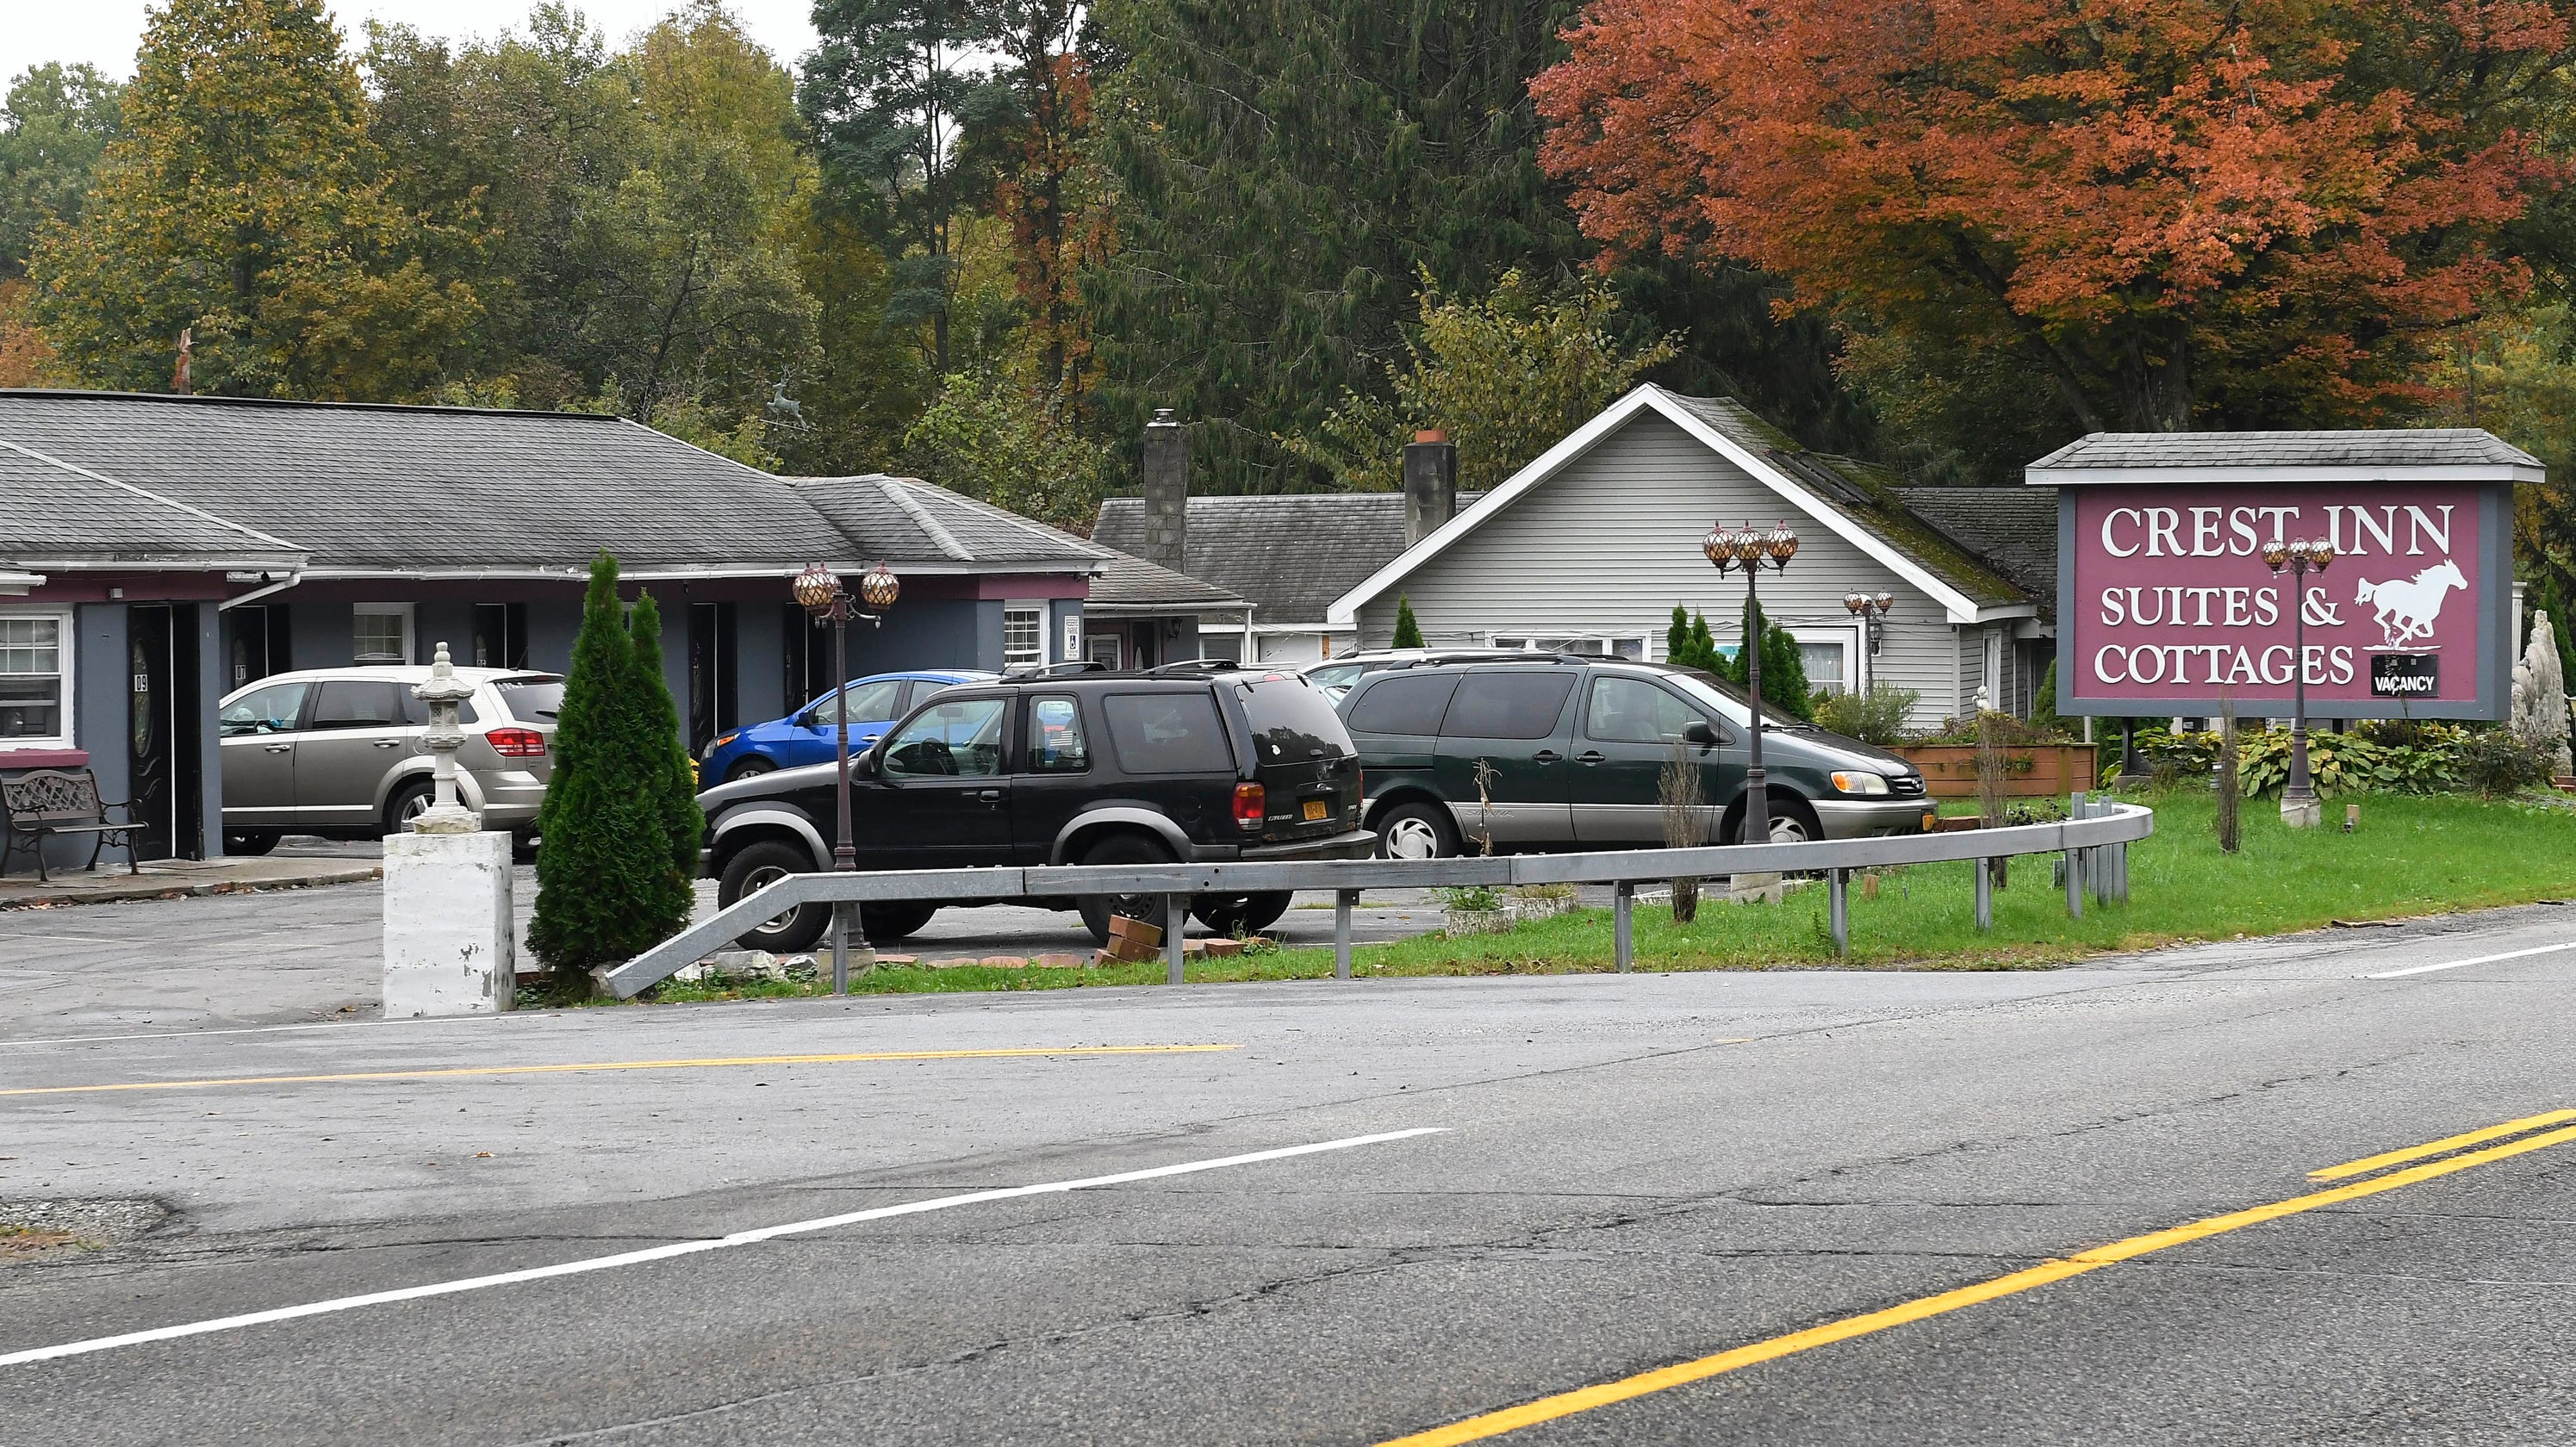 Limo crash: Suspicious death investigated at hotel owned by Hussain